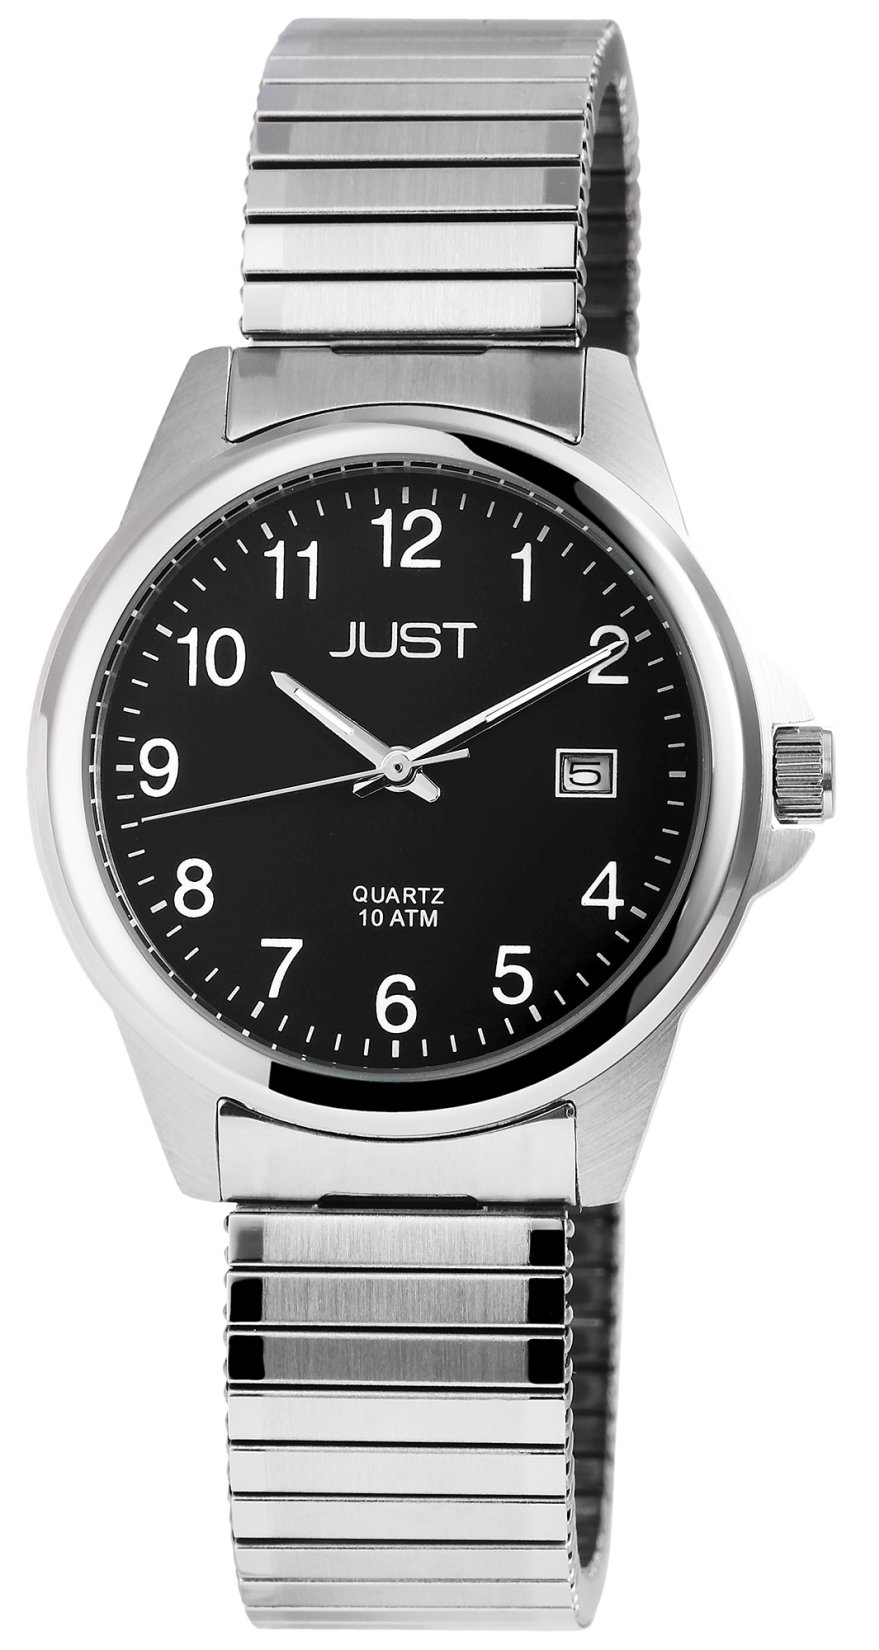 JUST men's watch 2094-001